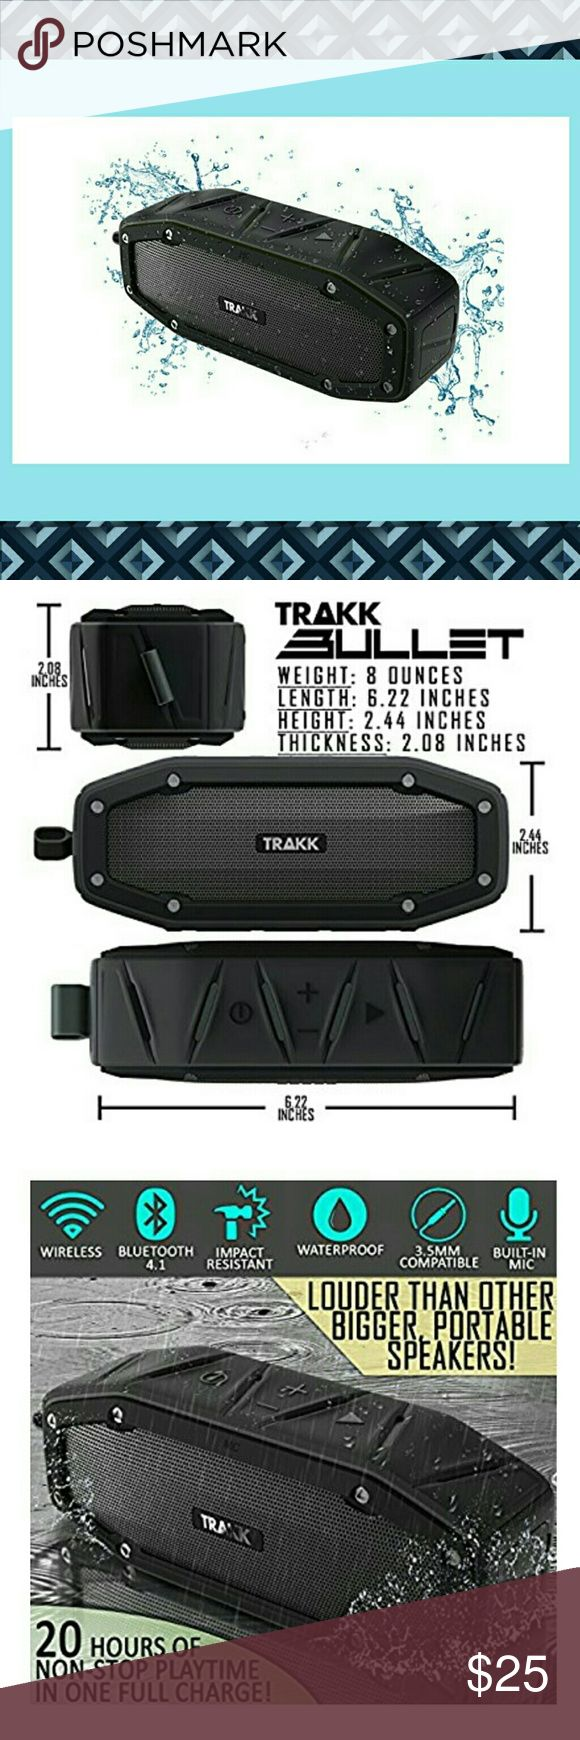 Portable Wireless 10W+ Bluetooth Speaker w/MaxBass weighs just 8oz.& measures only 6x2.8?but it packs a mean punch w/2 powerful 10W speakers that produce amazingly loud power,crystal clear sound & high quality audio built to be ultra portable,tough & has an IPX6 waterproof rating w/an external armor to protect it from drop impacts,bumps & other issues caused by active outdoor use. It has an impressive play time of 20hrs from a single full charge w/Bluetooth 4.1 technology for quick easy…